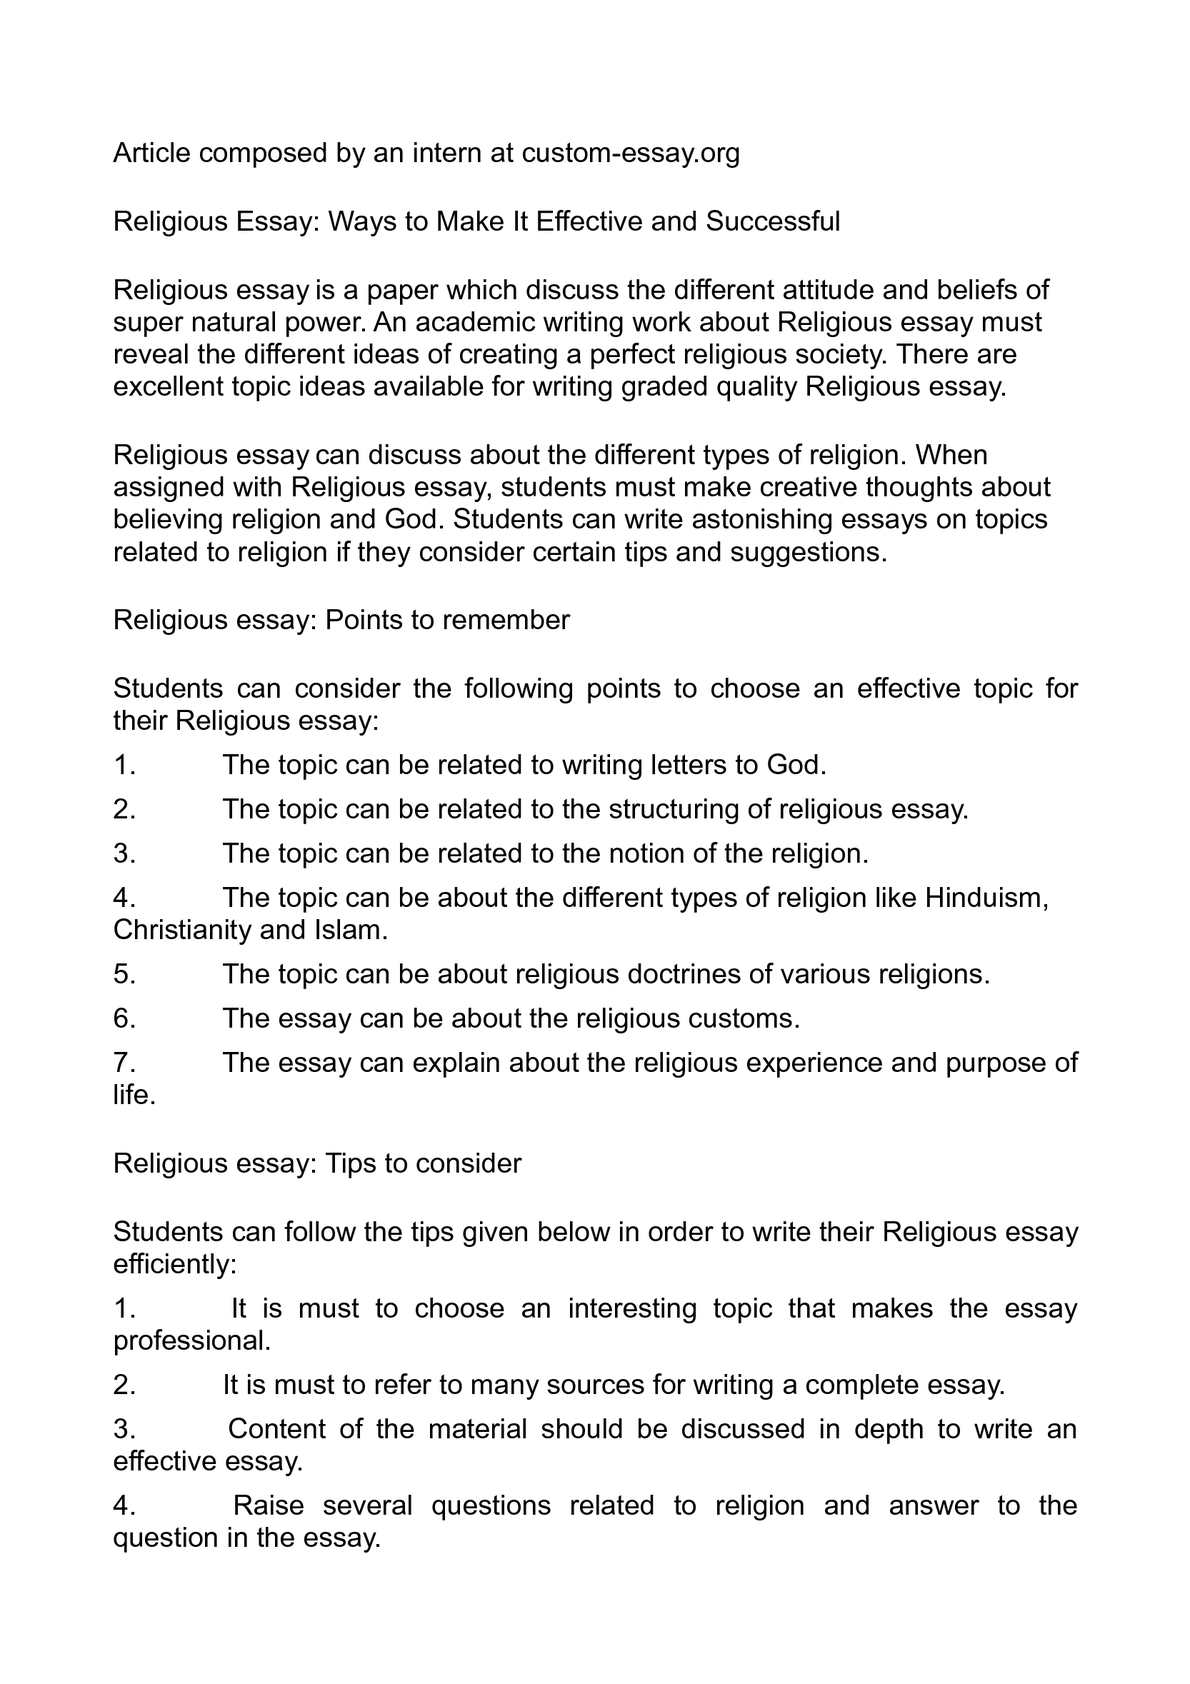 006 P1 Religion Essay Formidable Sociology Of Questions Paper Ideas Introduction Full